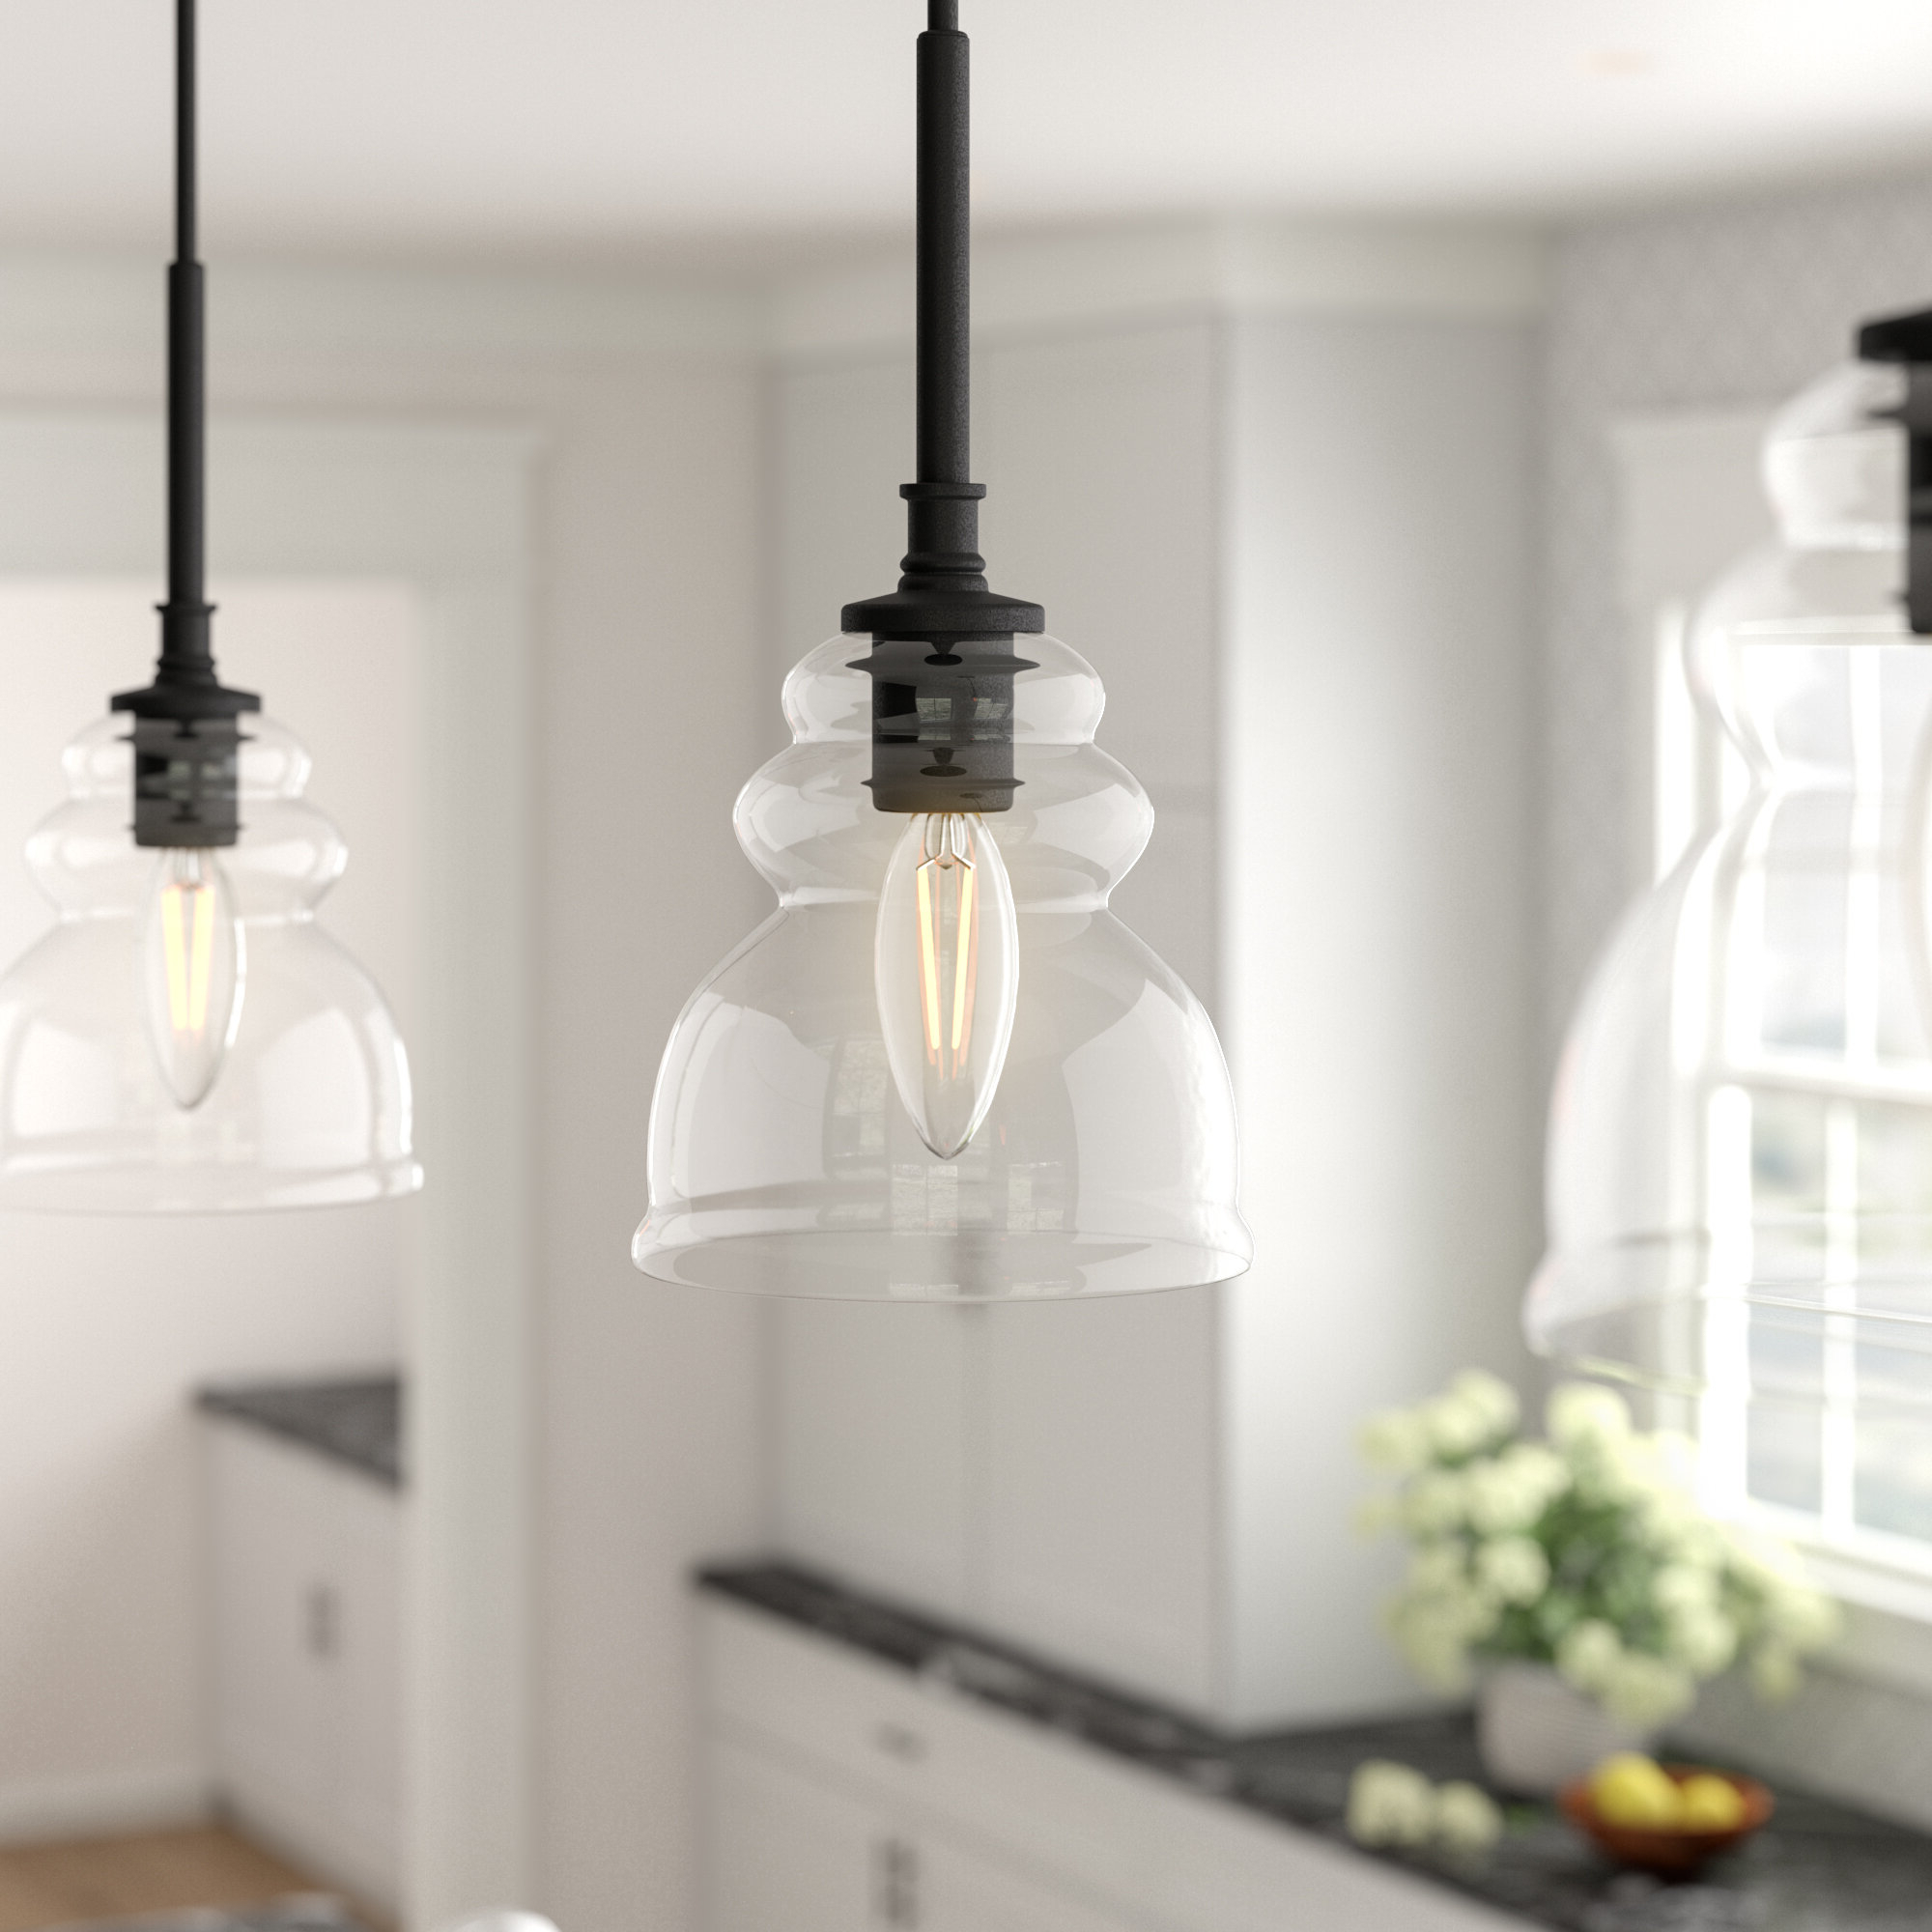 Famous Sargent 1 Light Single Bell Pendants In Arla 1 Light Single Bell Pendant (View 3 of 25)